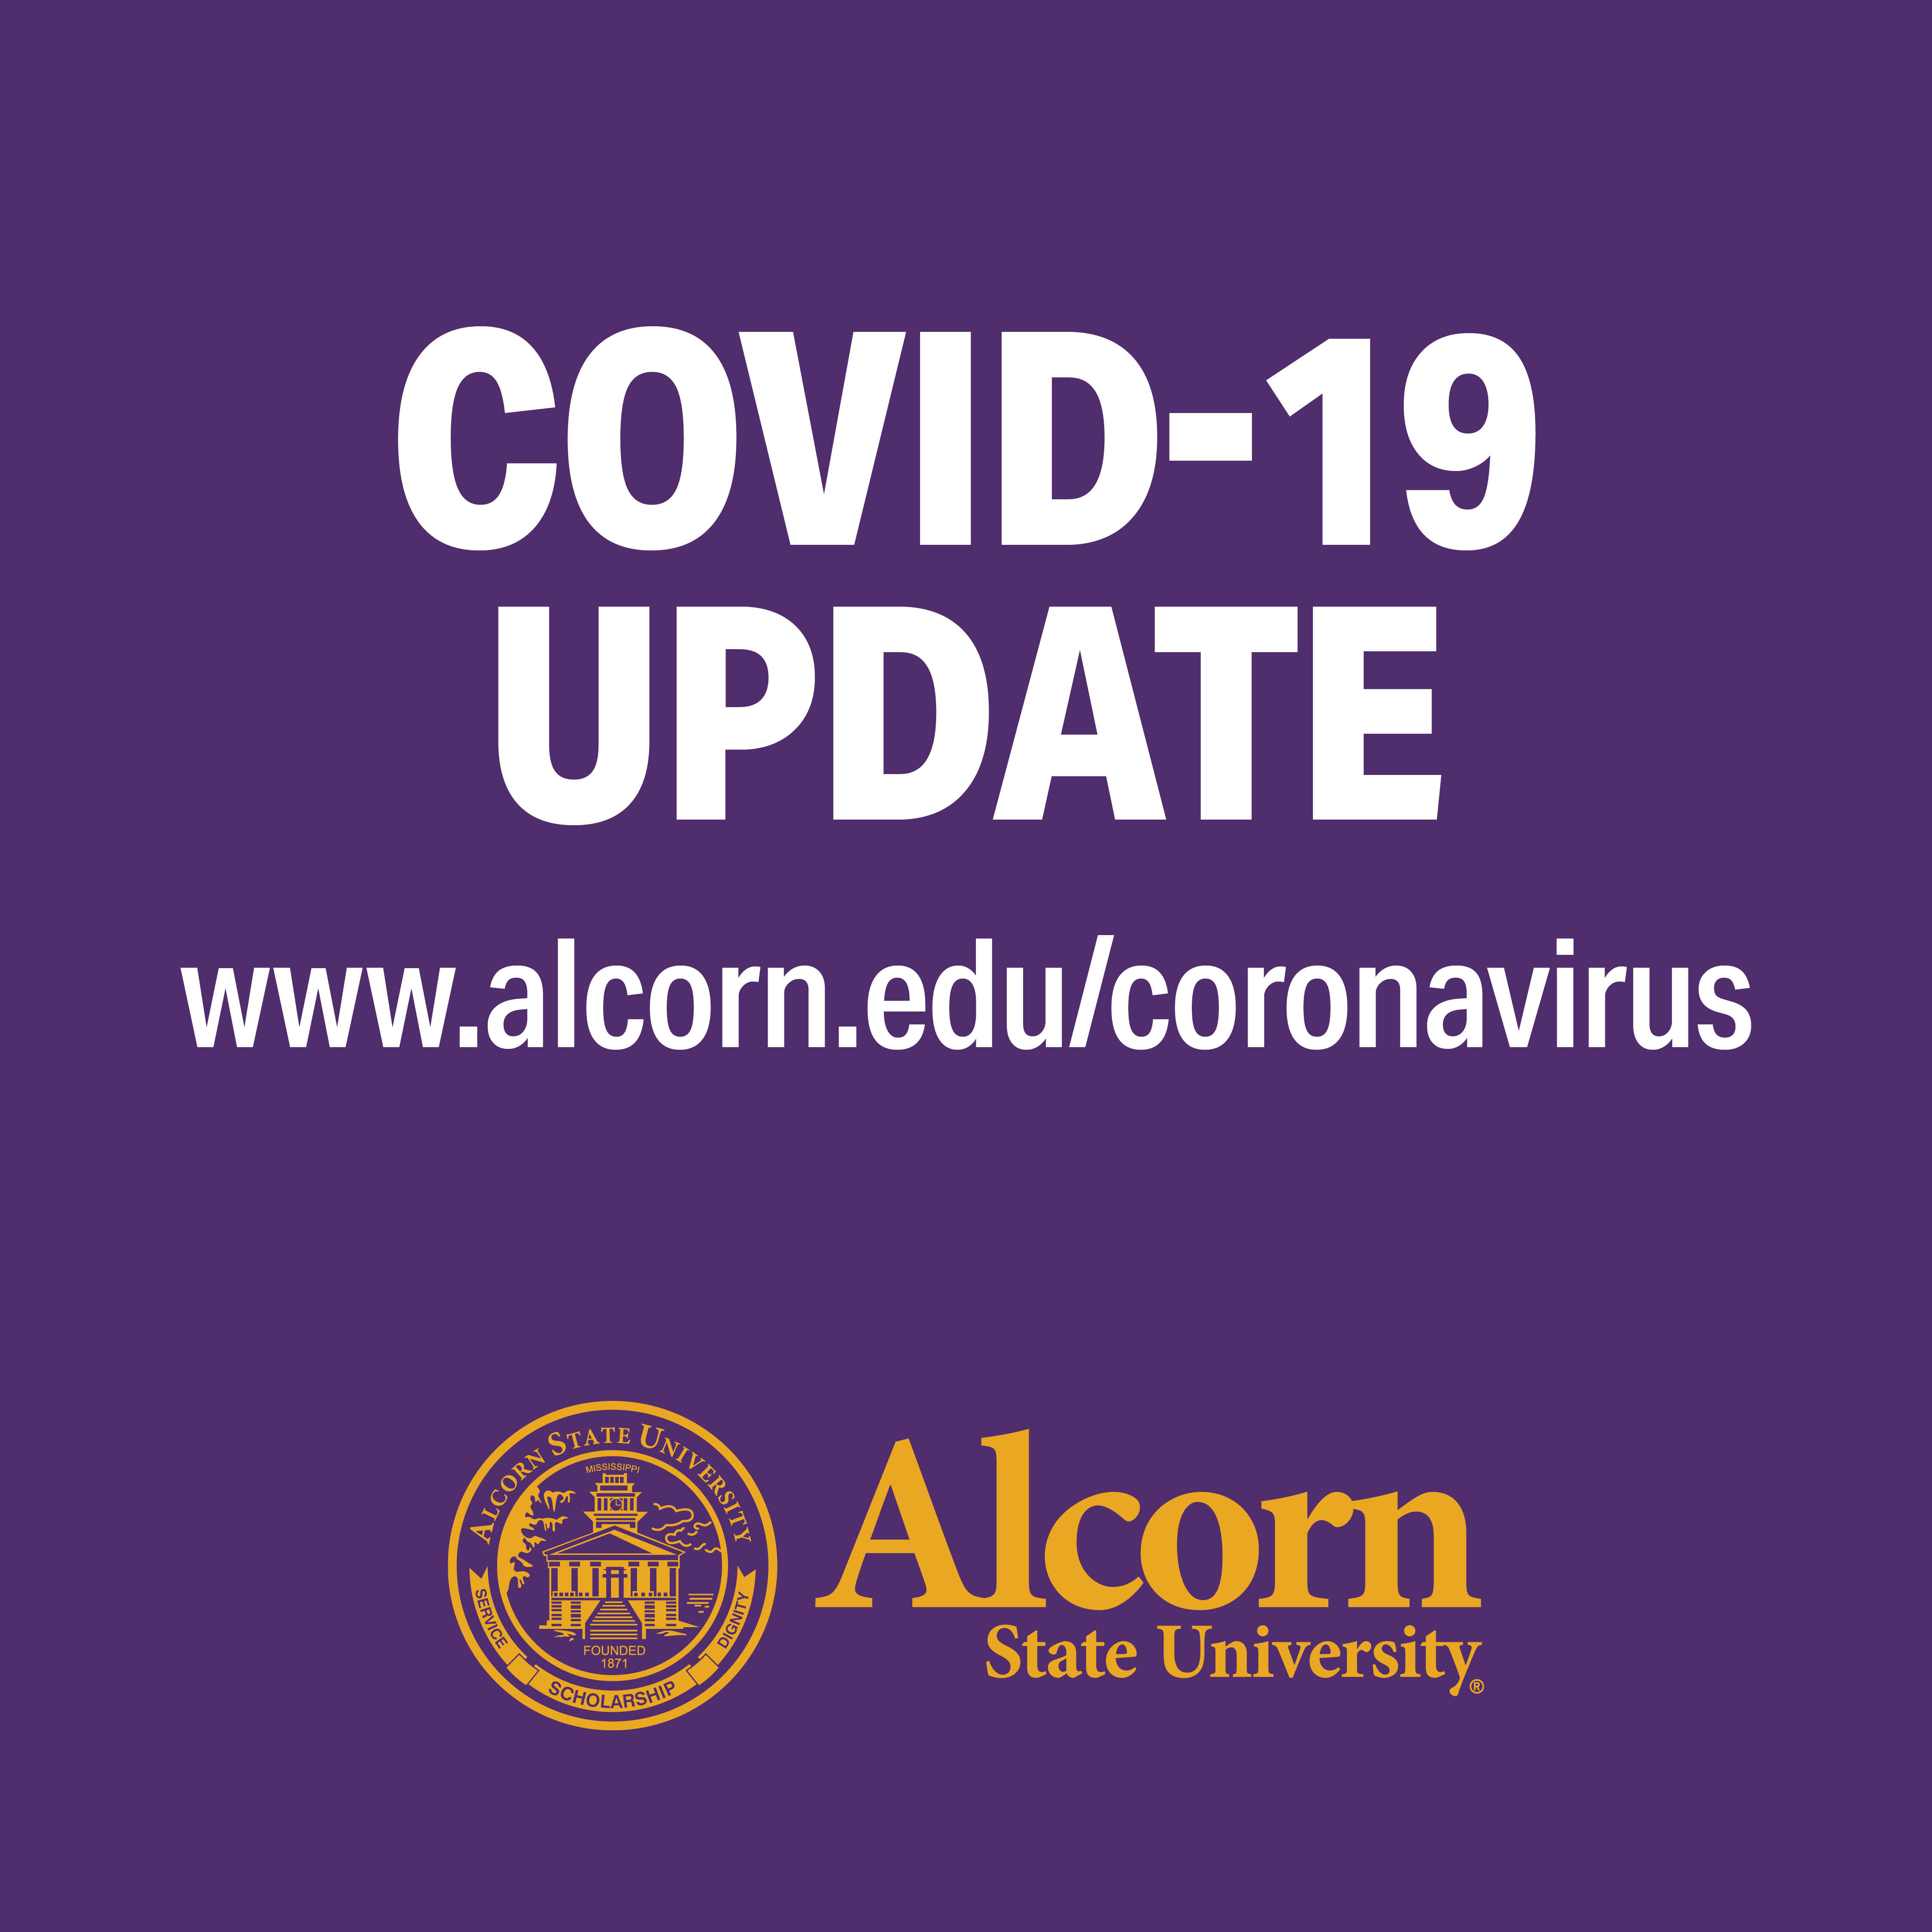 UPDATE #2: University guidance and information related to Spring Break, Travel, Campus Events, and Virtual Instruction